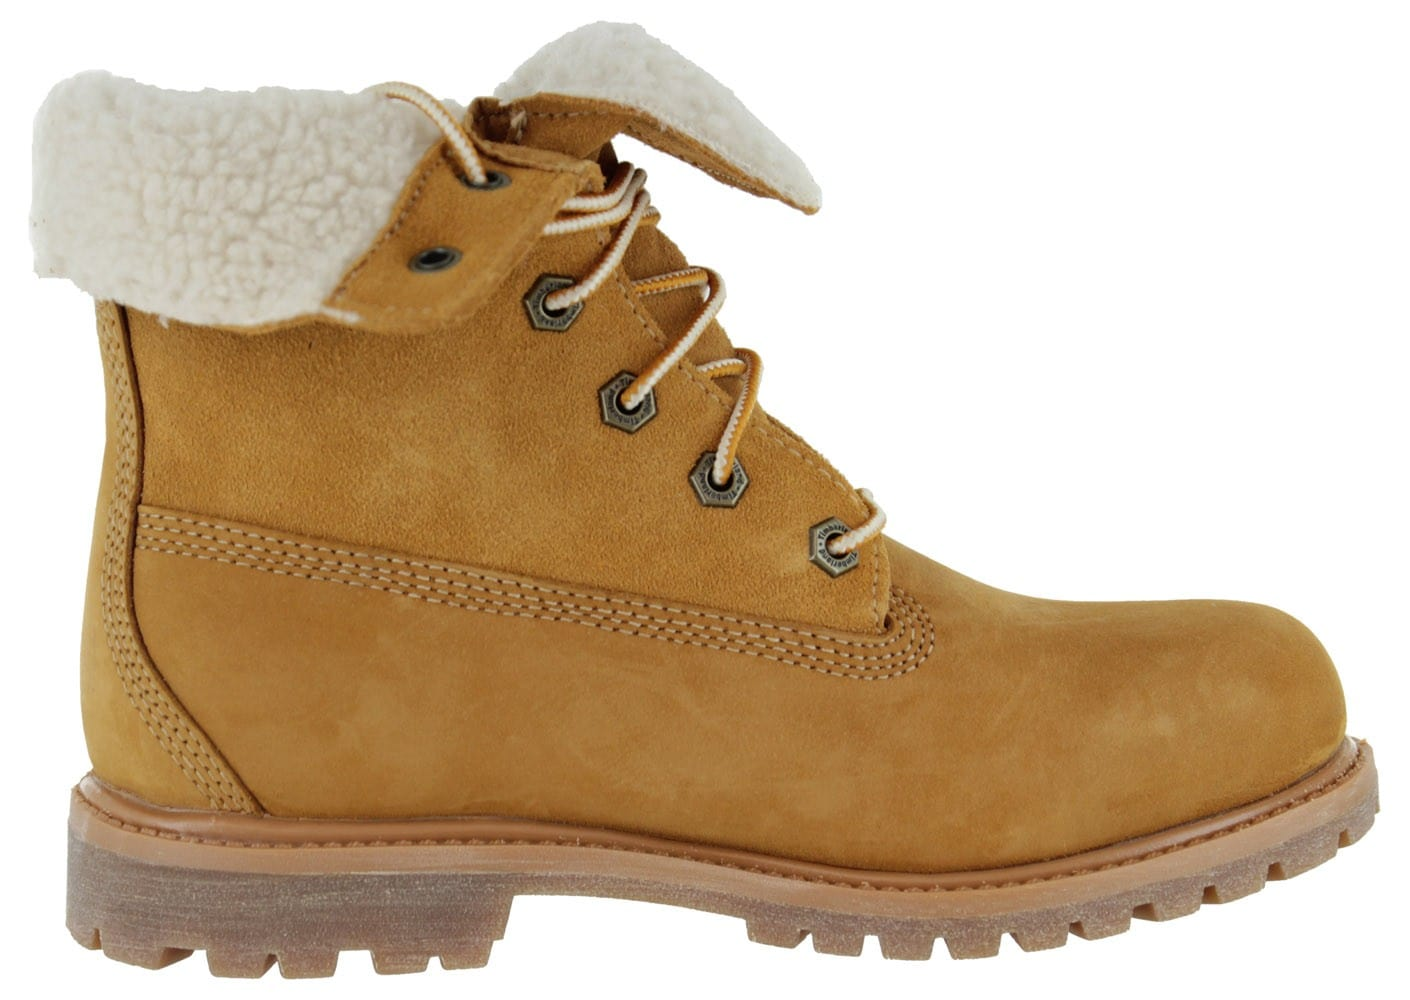 timberland boots authentics beige fourr e chaussures chaussures chausport. Black Bedroom Furniture Sets. Home Design Ideas